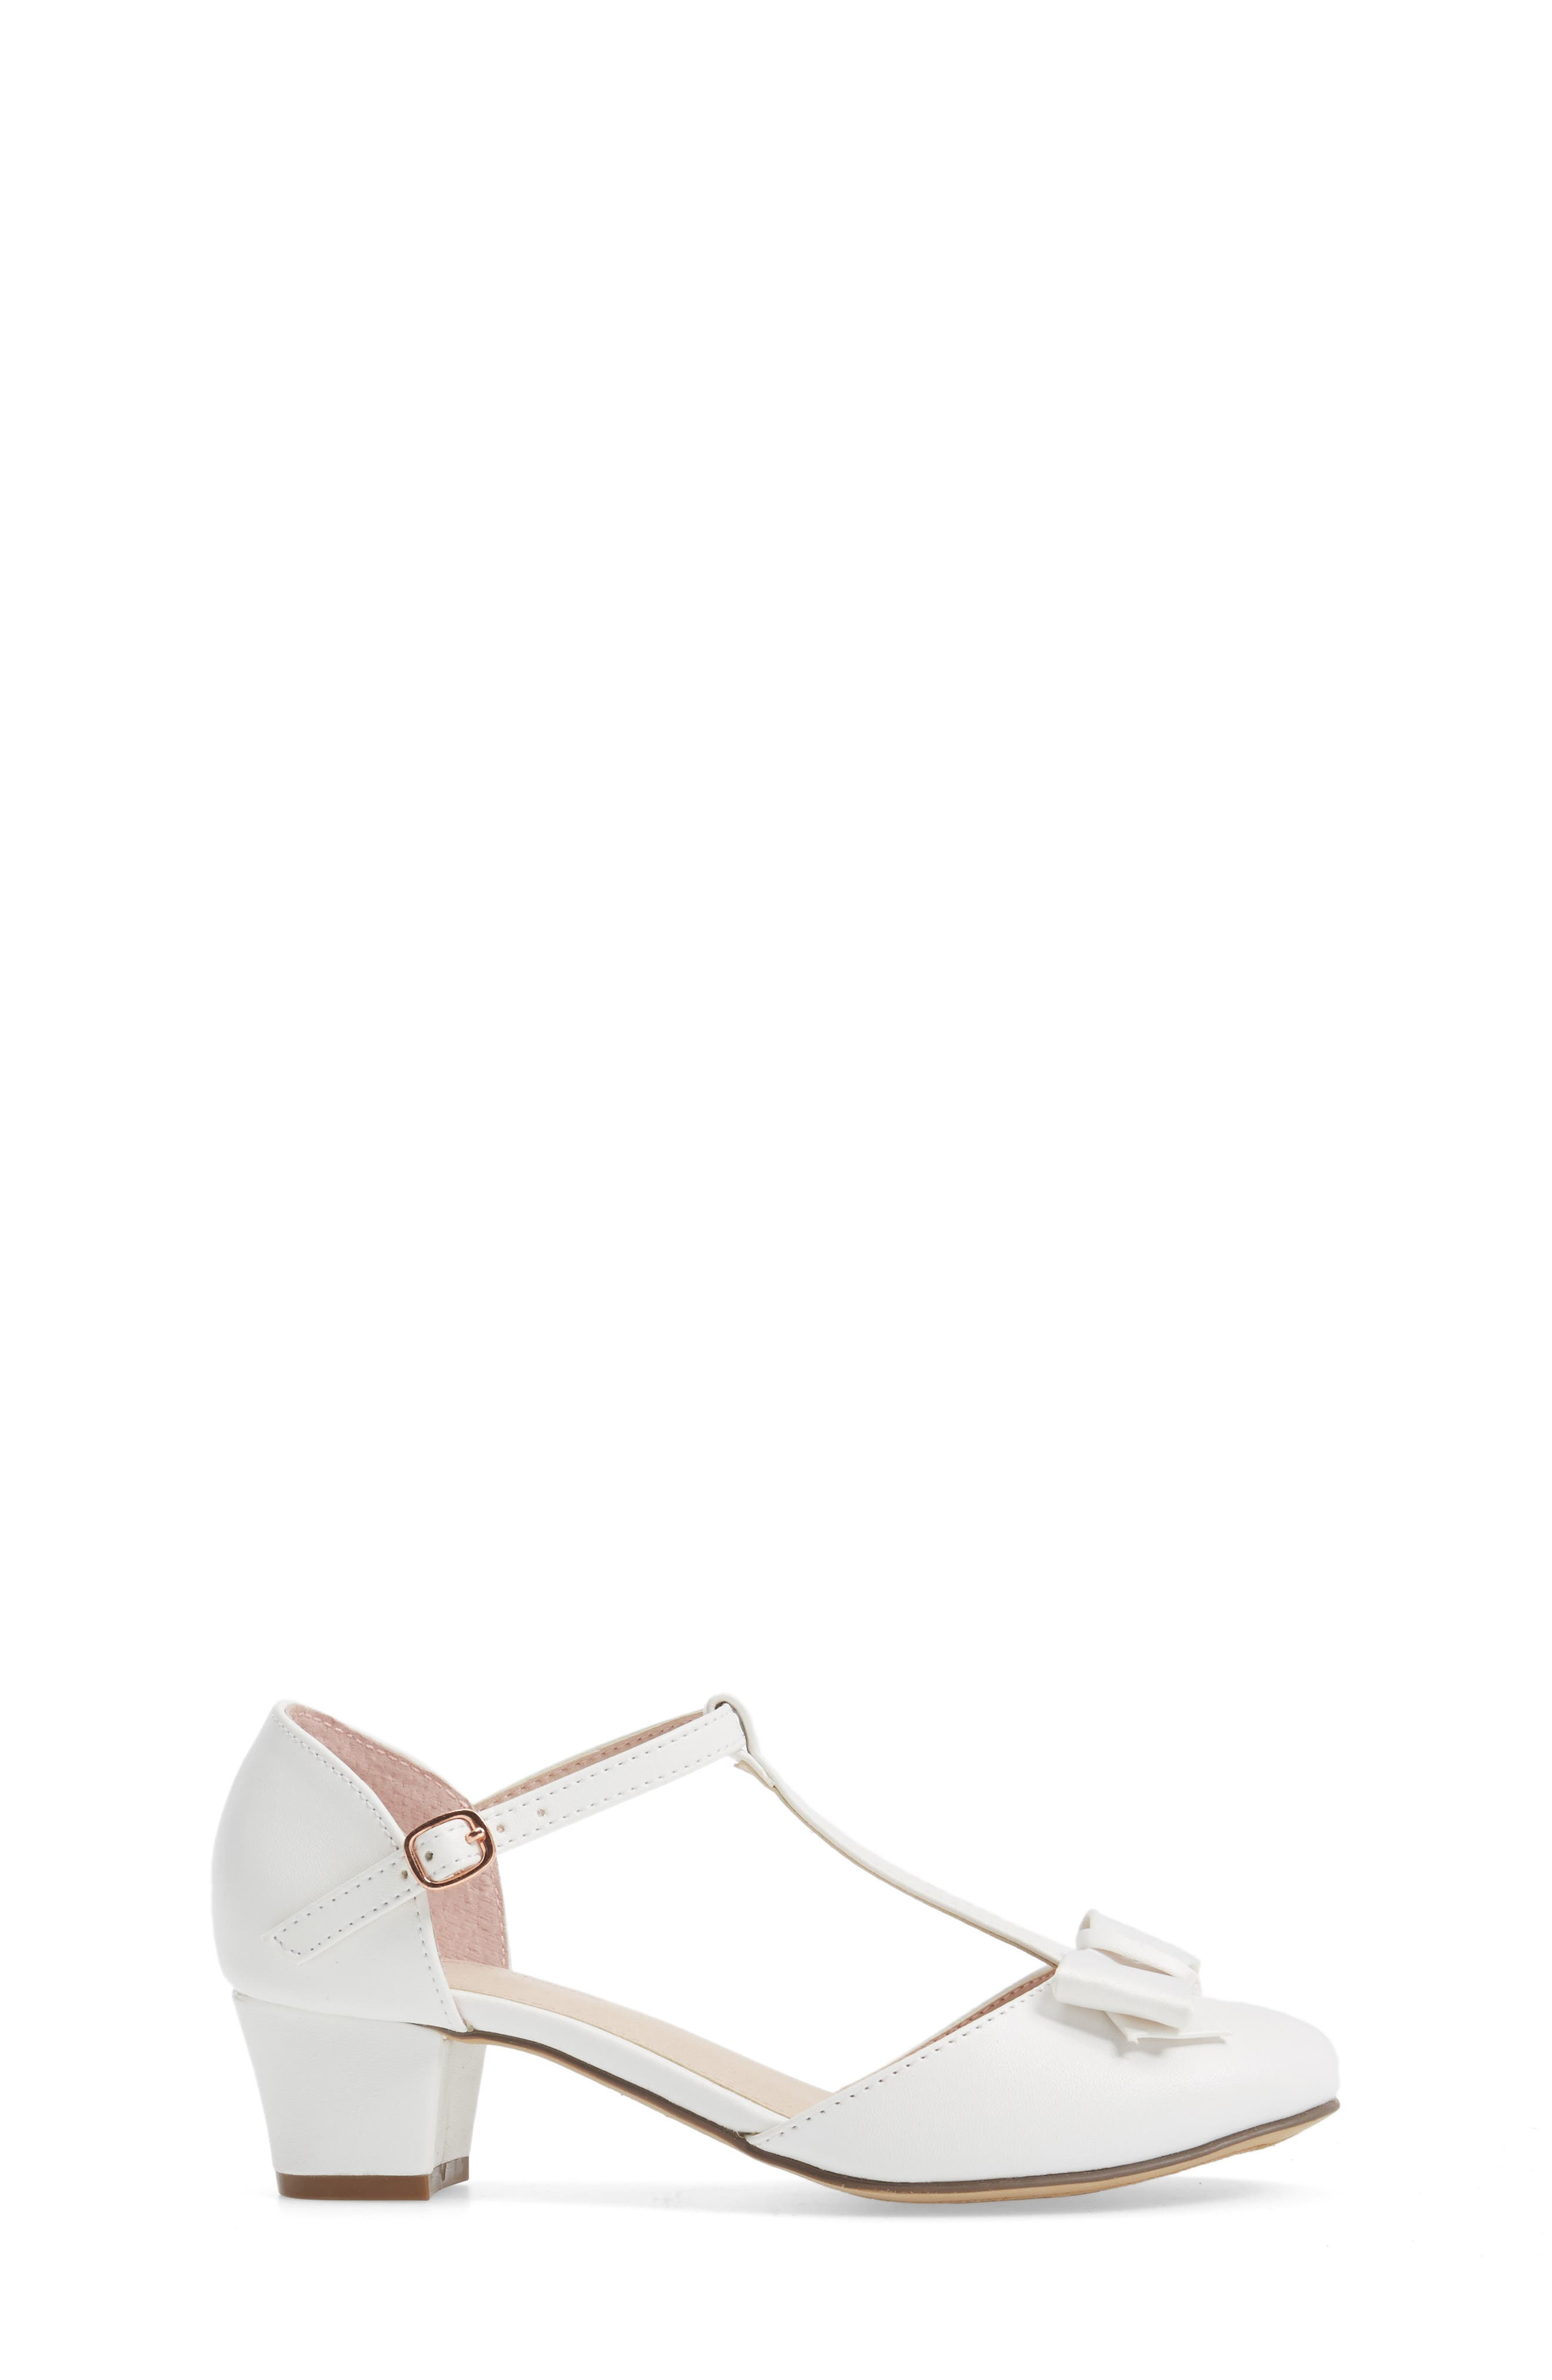 Wylow T-Strap Bow Pump,                             Alternate thumbnail 3, color,                             White Faux Leather